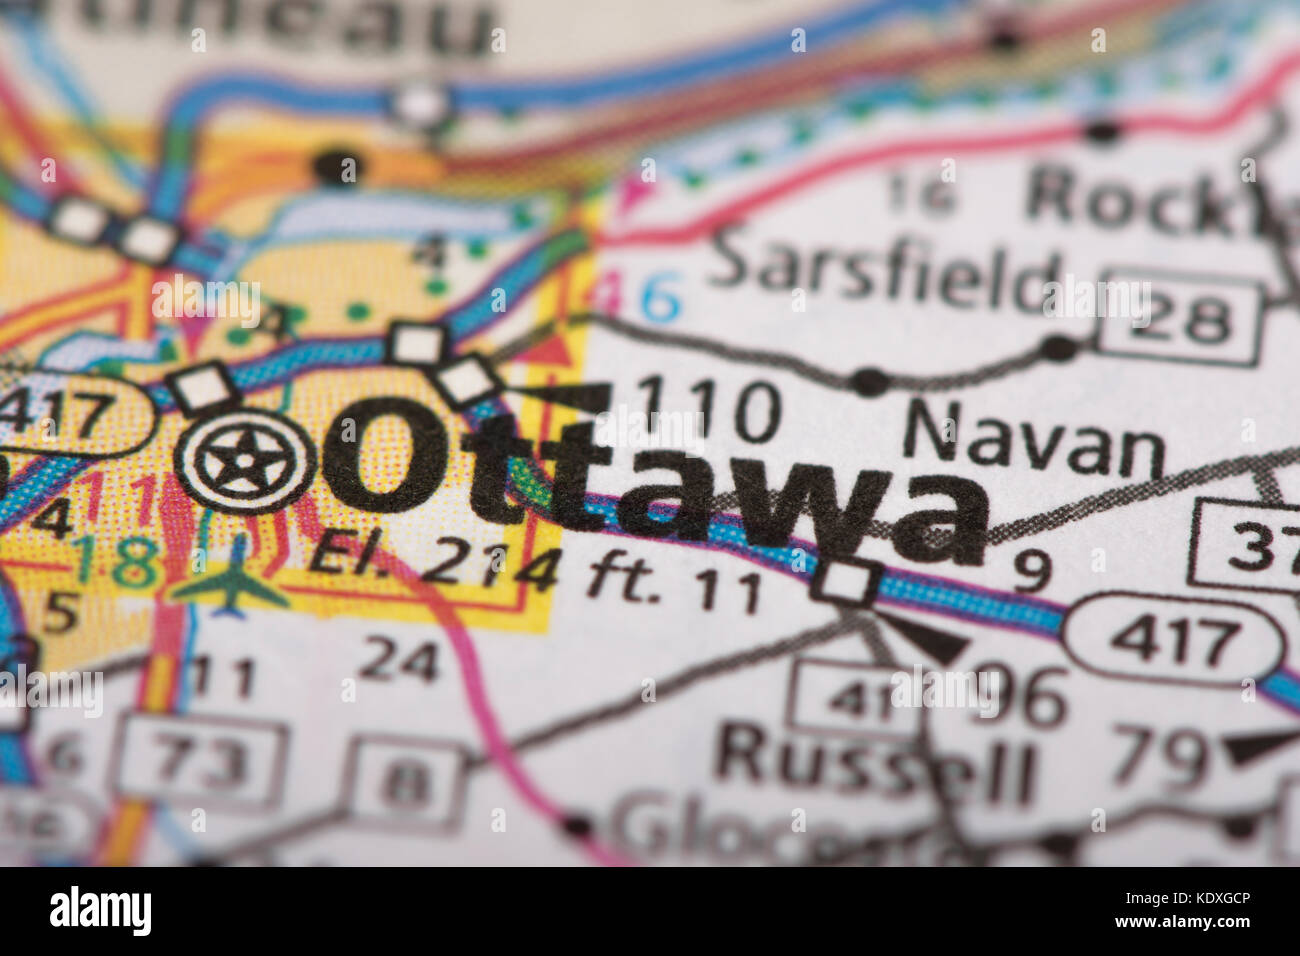 Closeup of Ottawa Ontario on a road map of Canada Stock Photo